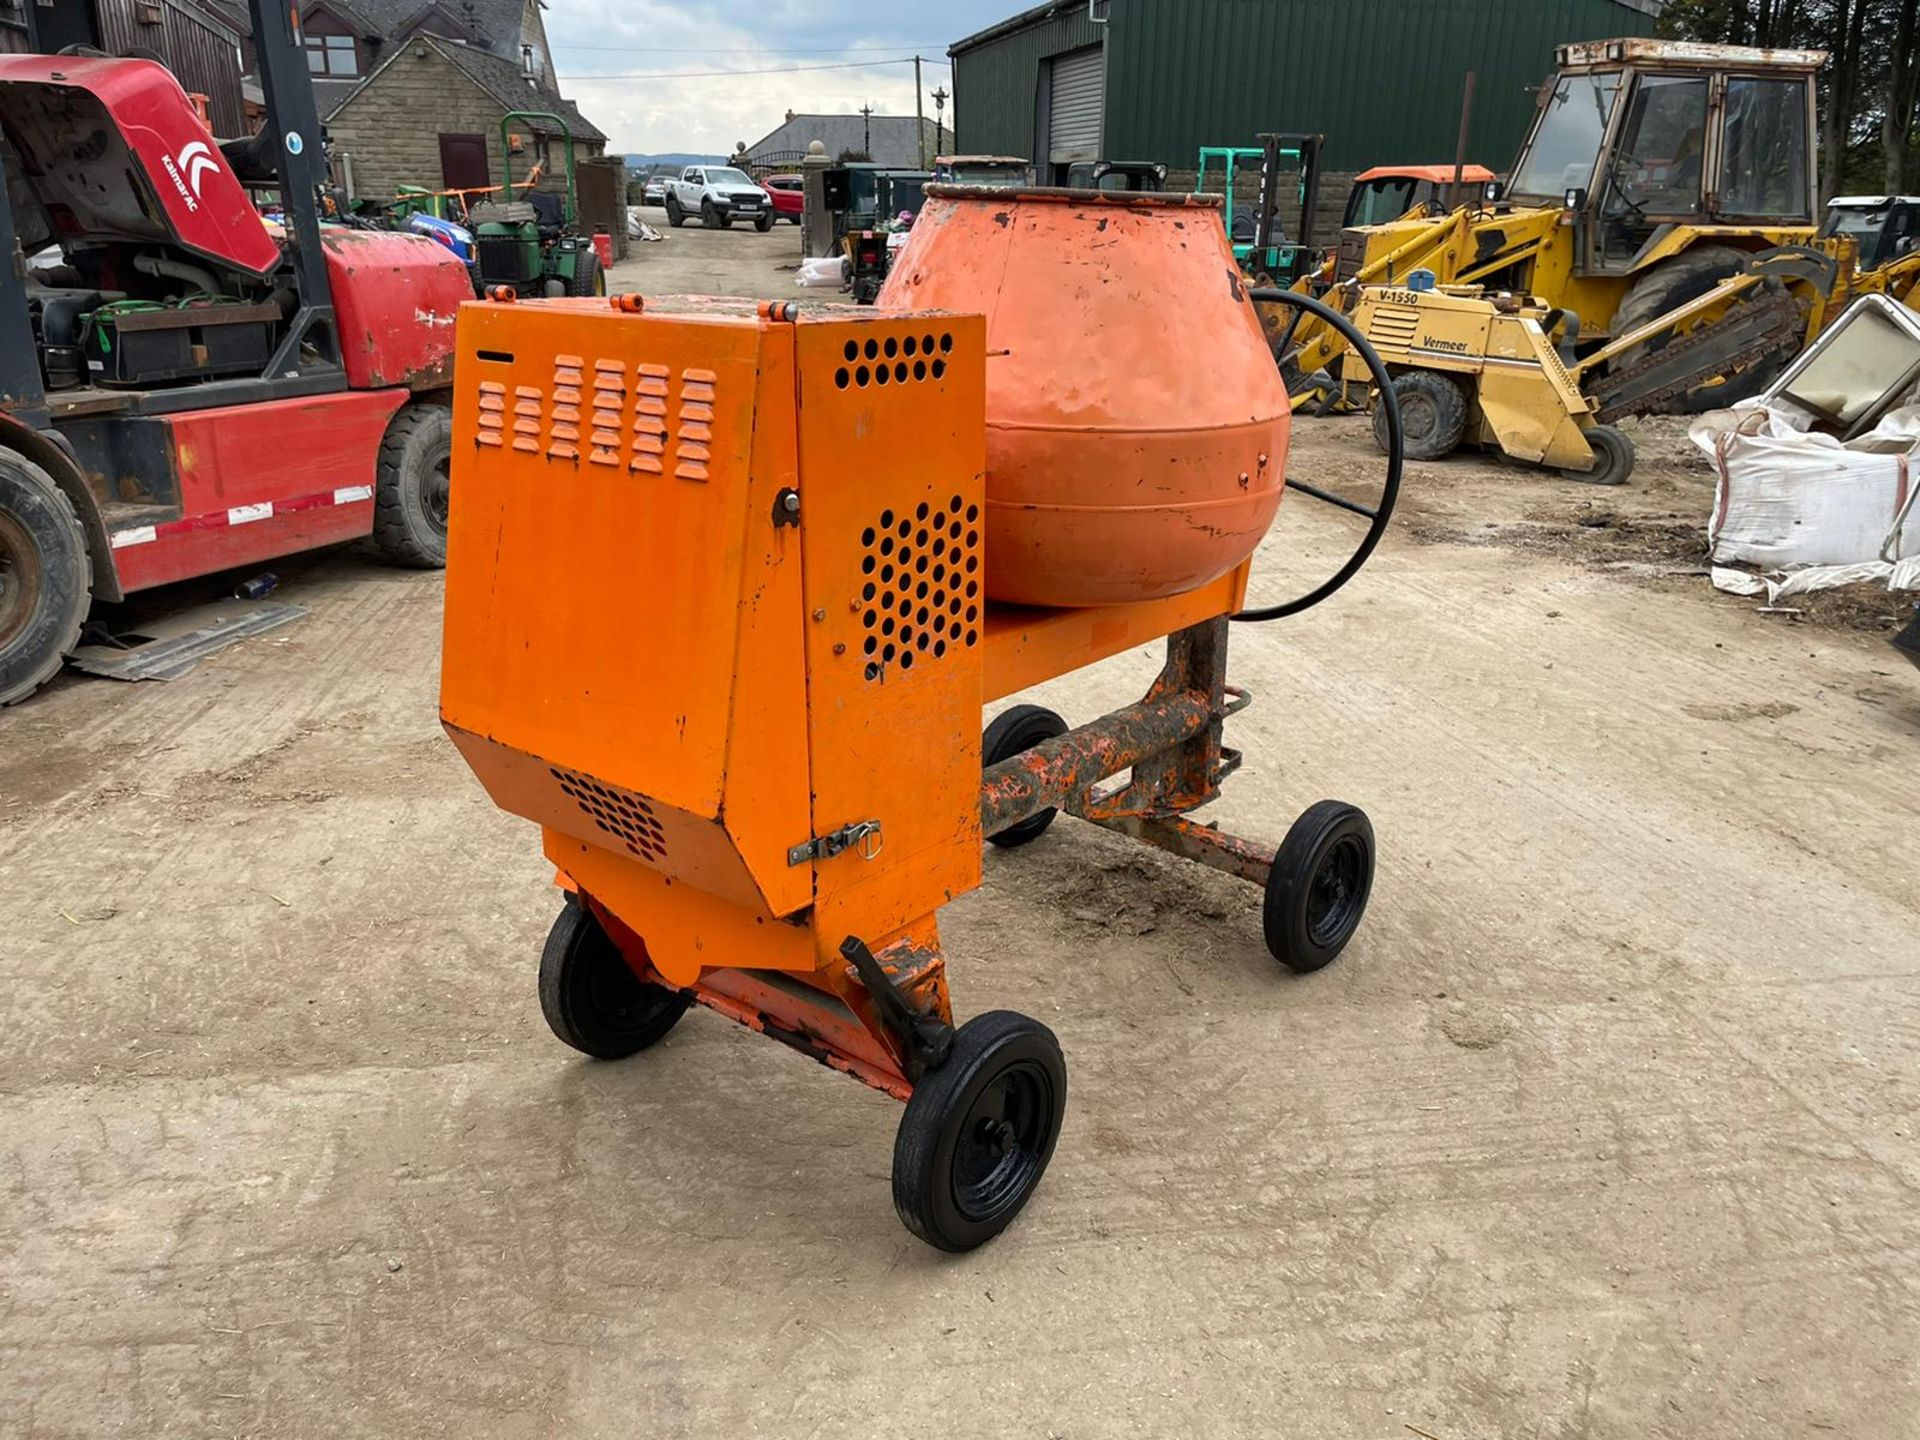 BELLE PREMIER 100XT CONCRETE MIXER, YANMAR DIESEL ENGINE, GOOD COMPRESSION *NO VAT* - Image 2 of 5